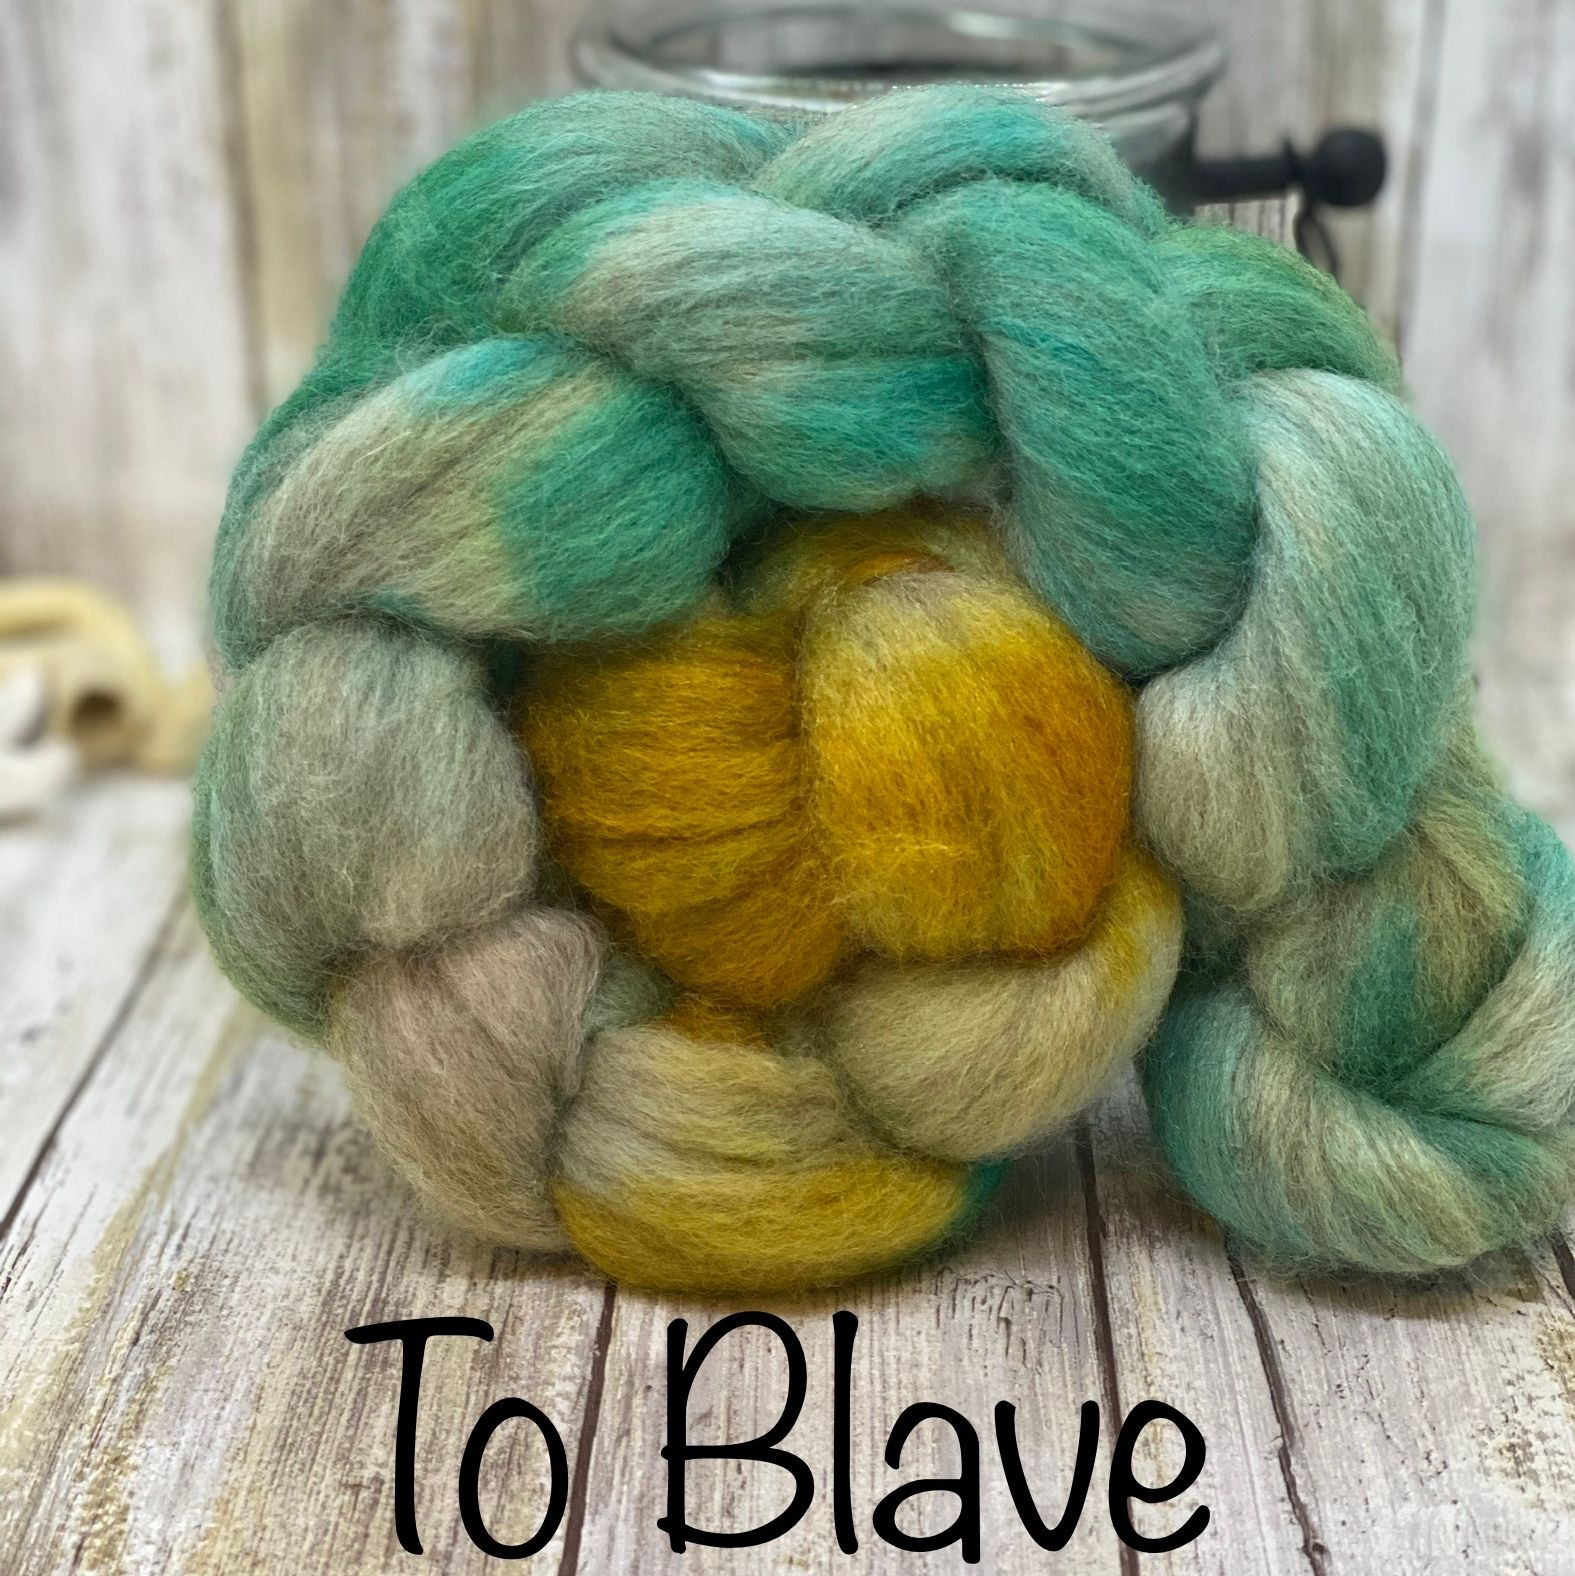 Princess Bride is the best movie ever - Fencing, Fighting, True Love.. And Miracles! To Blave - It means to bluff. Join us 10:00 Eastern. 7:00 Pacific Friday night October 23 on @woolandfiberarts to see our new collection! Roving, yarn, and shenanigans! #handmade #bfl #merinowool #yarn #handspunyarn #handspun #spinnersoftheworld #spinning #spinningfiber #fibercrafty #spinningwheel #felting #handdyed #indiefiber #handspinner #feltingwool #woollove #spinersofinstagram #ravelry #roving